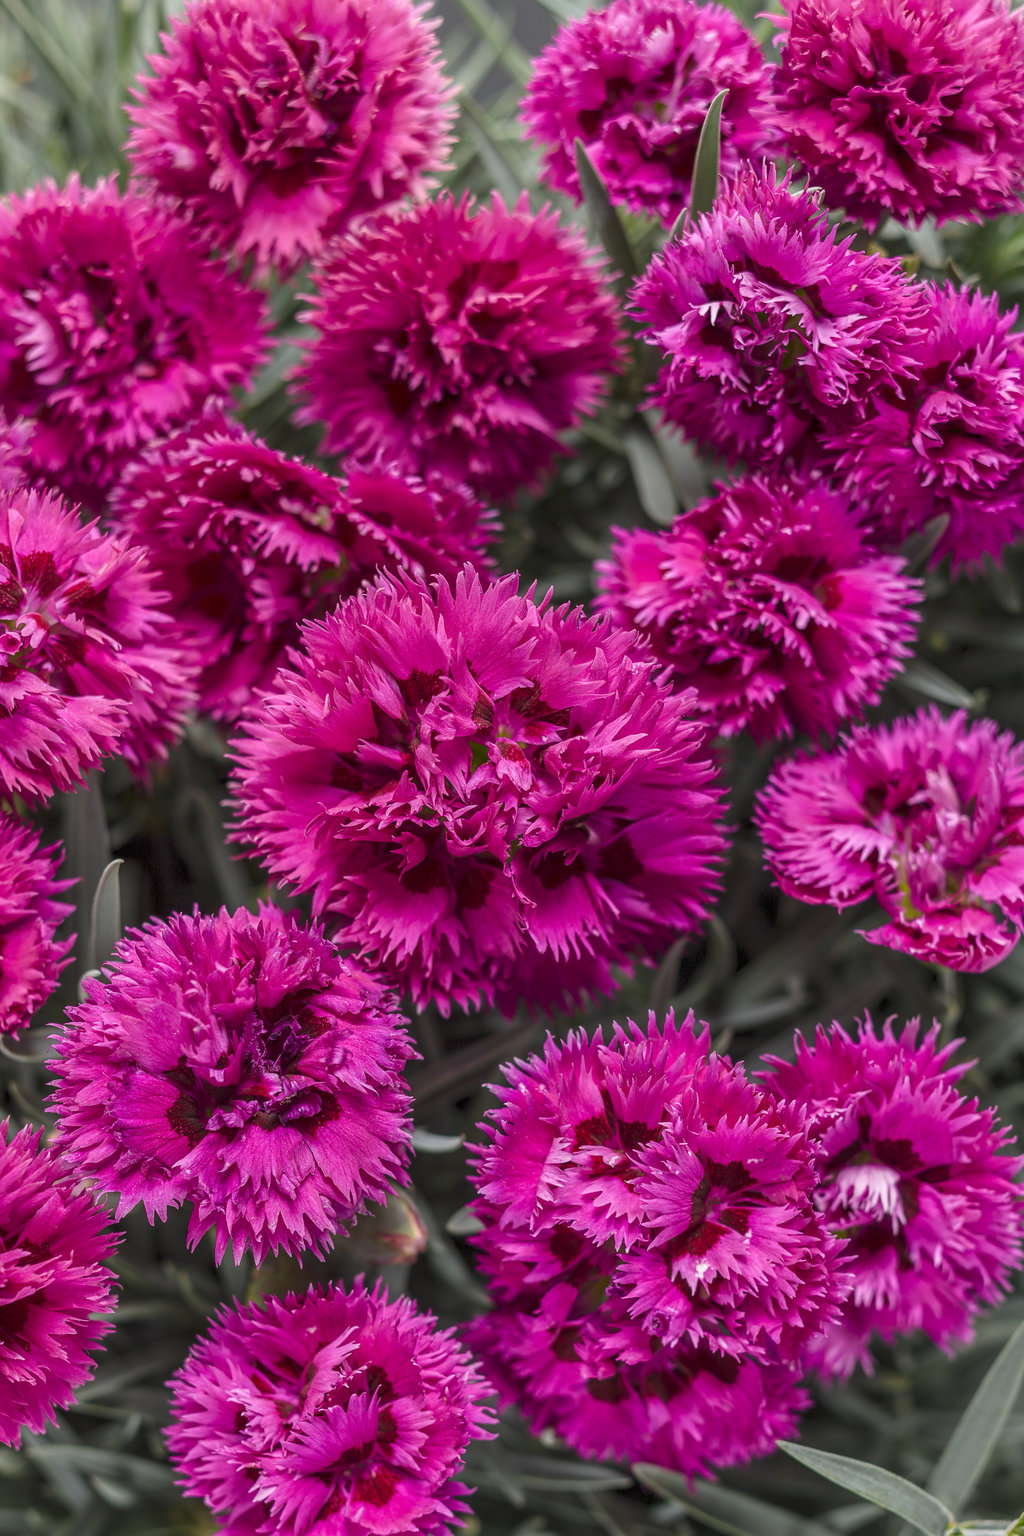 Fruit punch spiked punch pinks dianthus hybrid proven winners fruitpunchspikedcherryg mightylinksfo Image collections